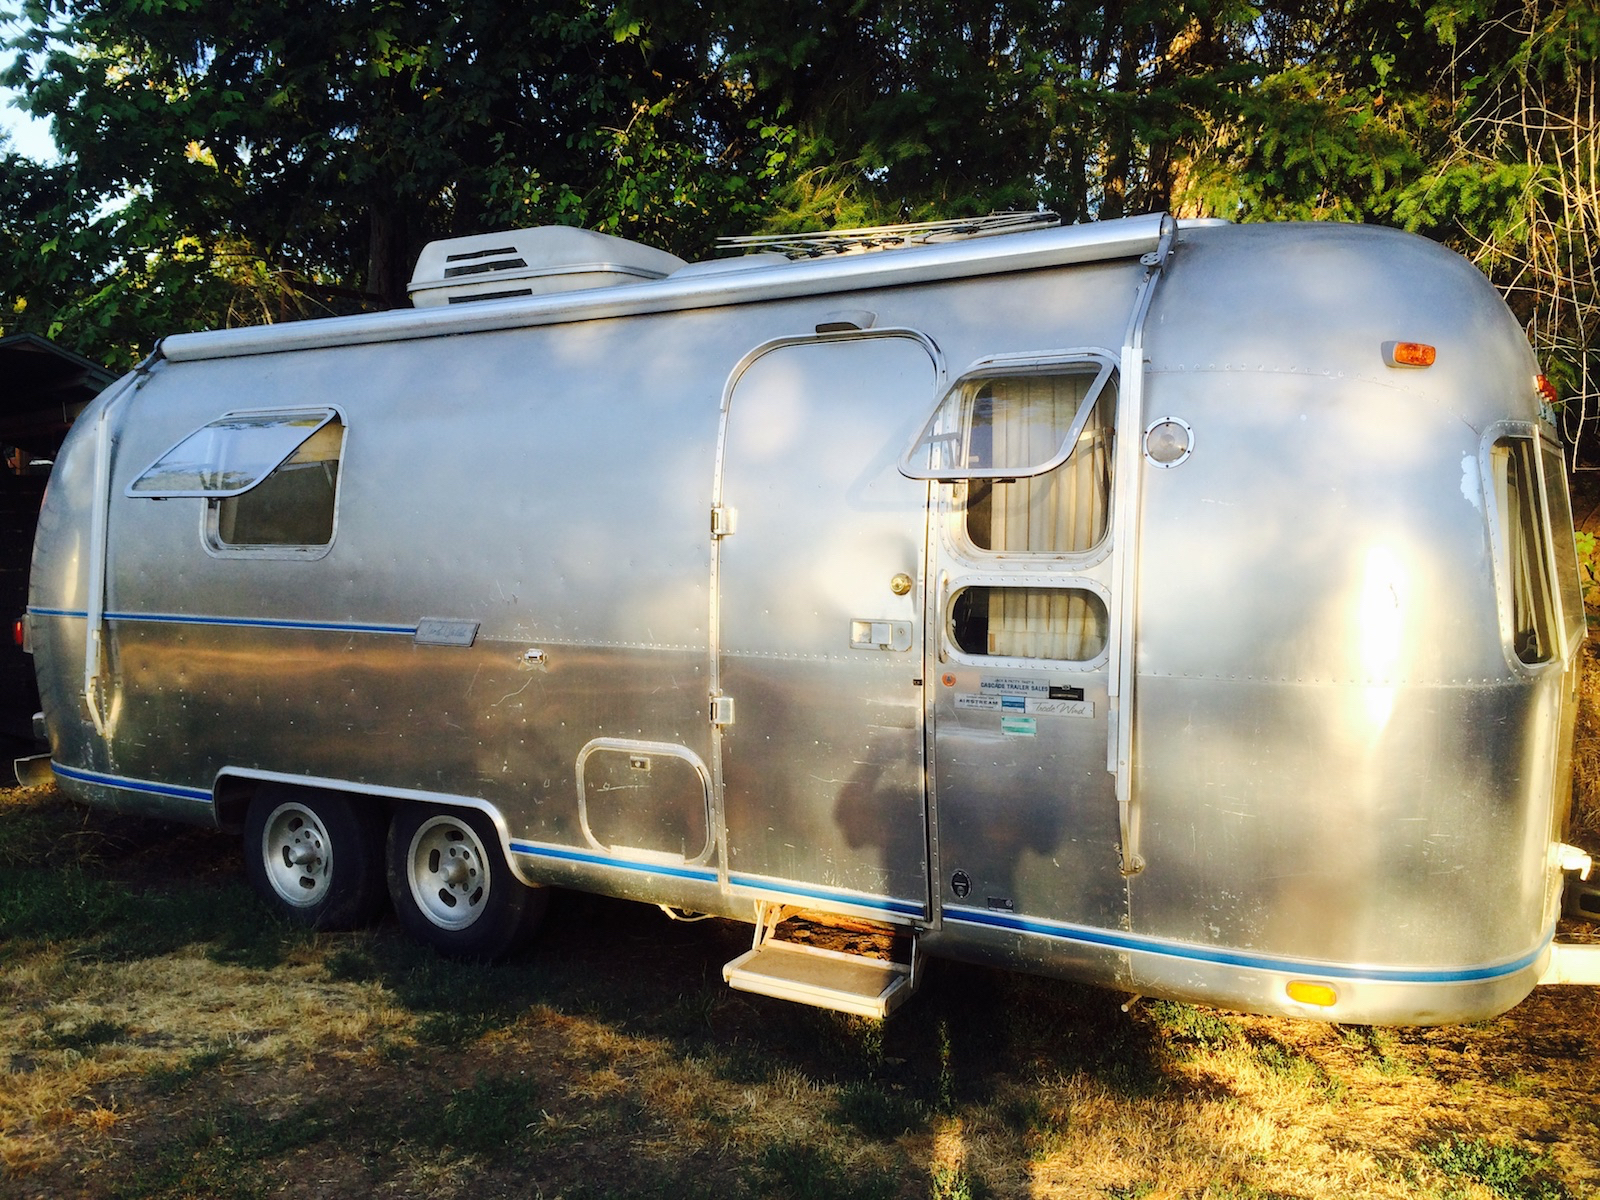 Click image for larger version  Name:airstream1.jpg Views:56 Size:2.14 MB ID:303082